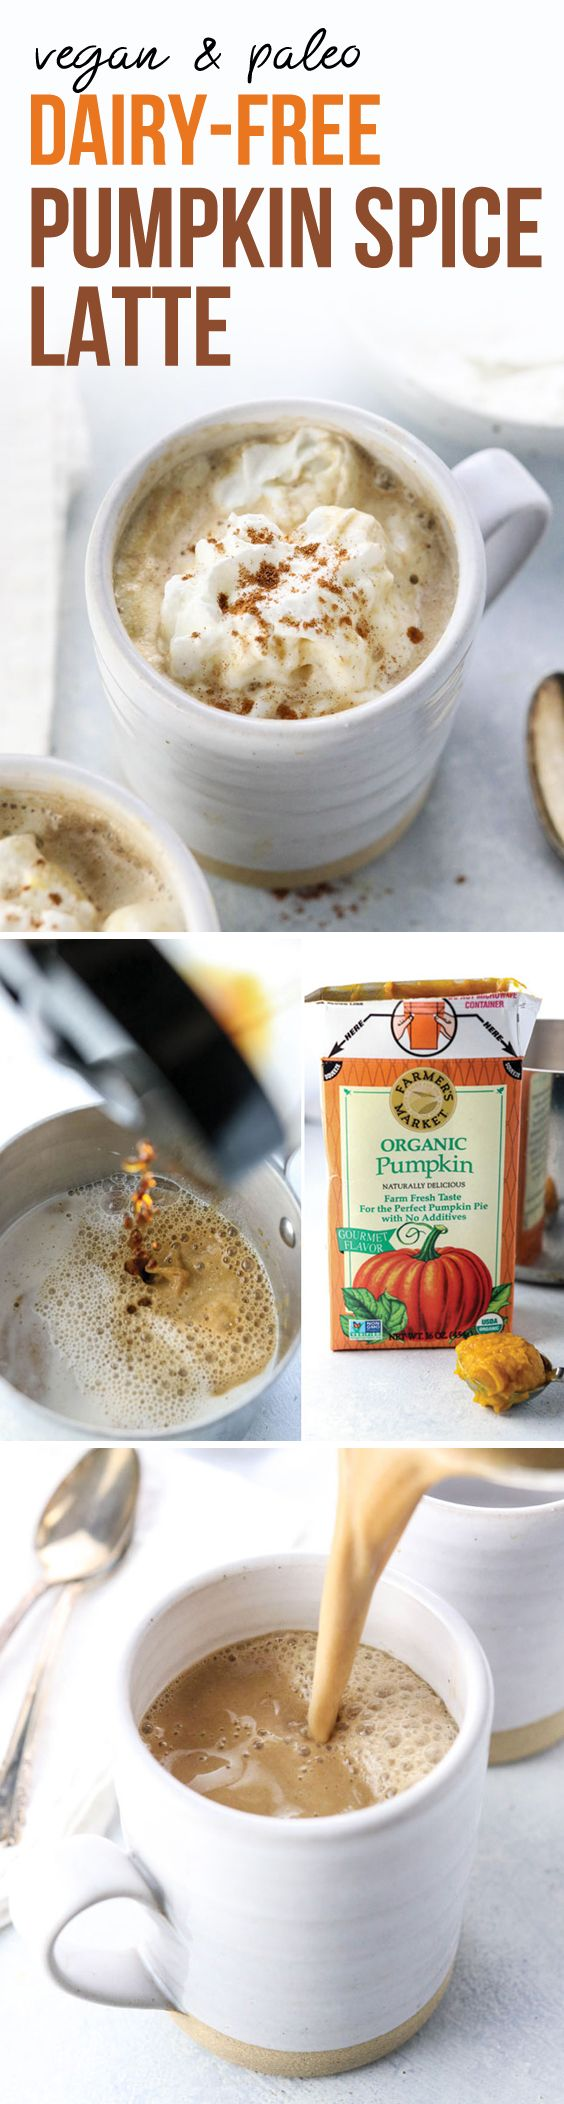 This dairy-free Pumpkin Spice Latte is made with almond milk and a splash of maple syrup for a naturally sweetened drink. Vegan & Paleo.